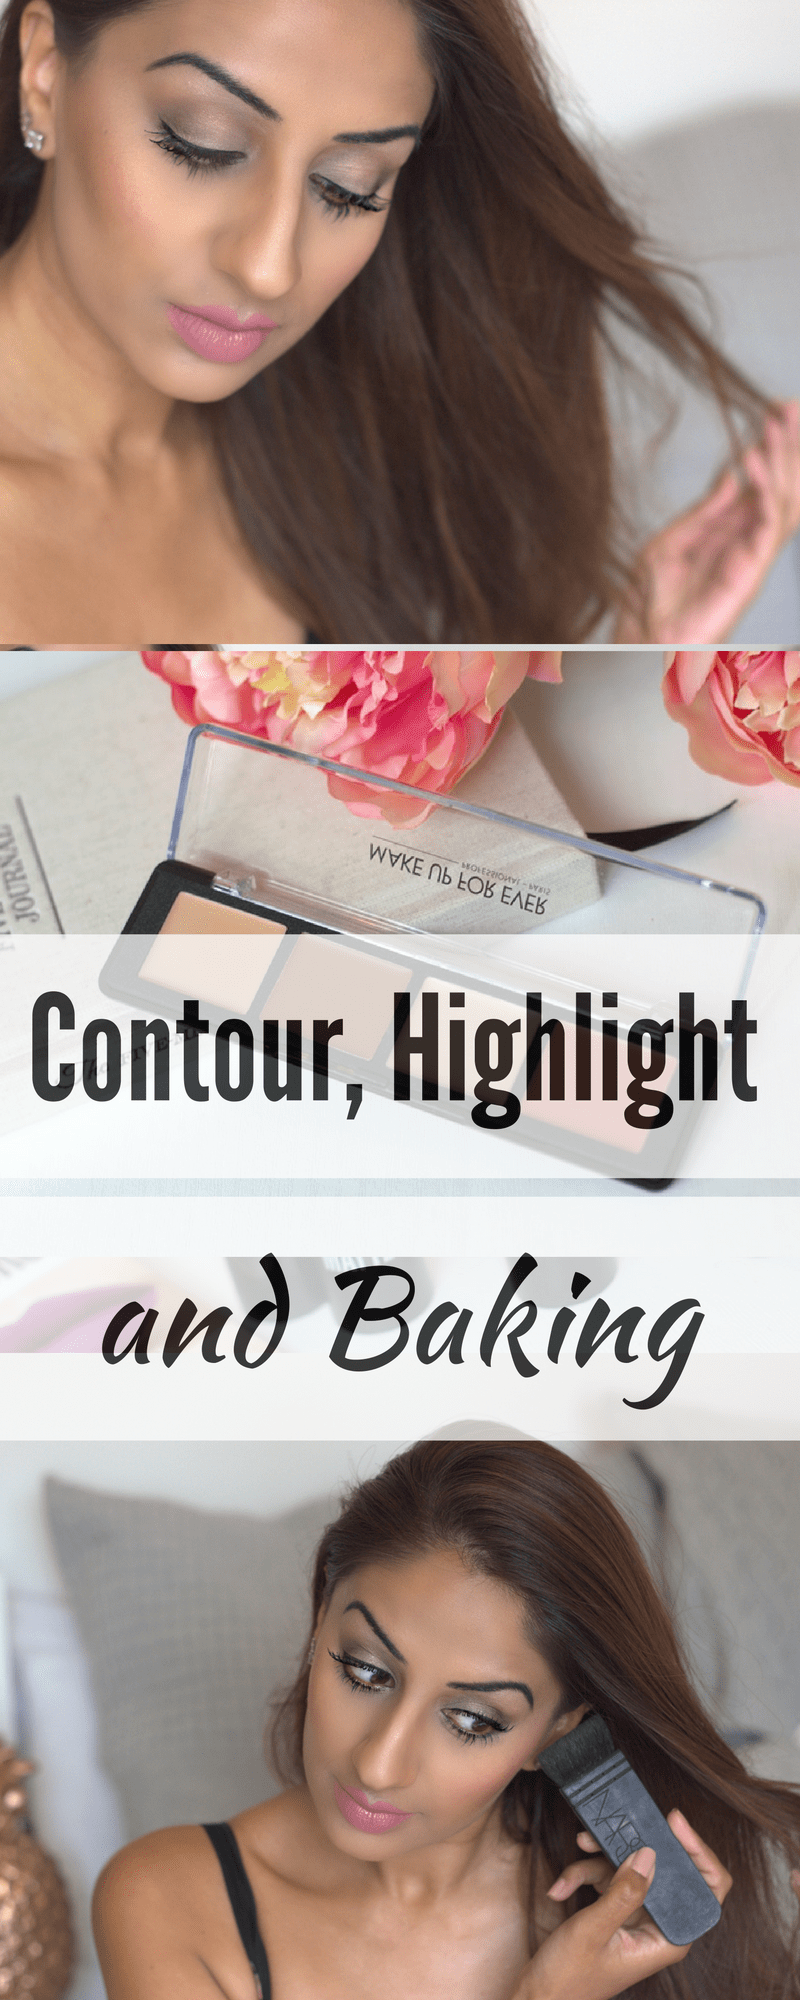 My Updated Contour & Highlight Tutorial with Baking ♥